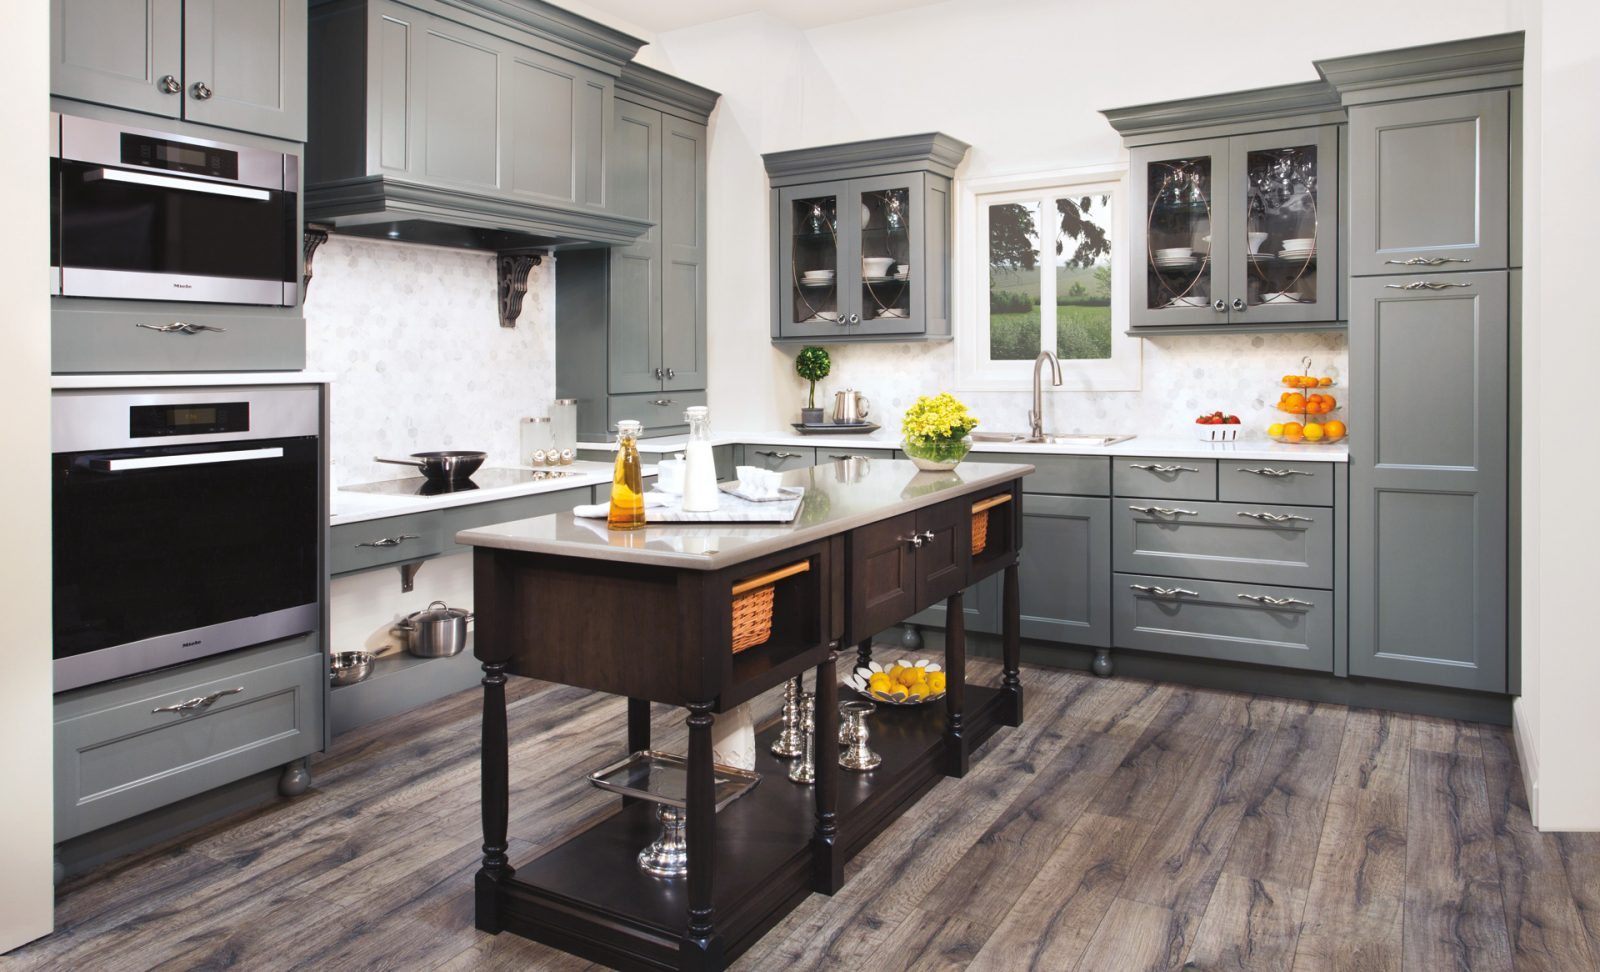 Cabinets in Kitchen | Barrett Floors